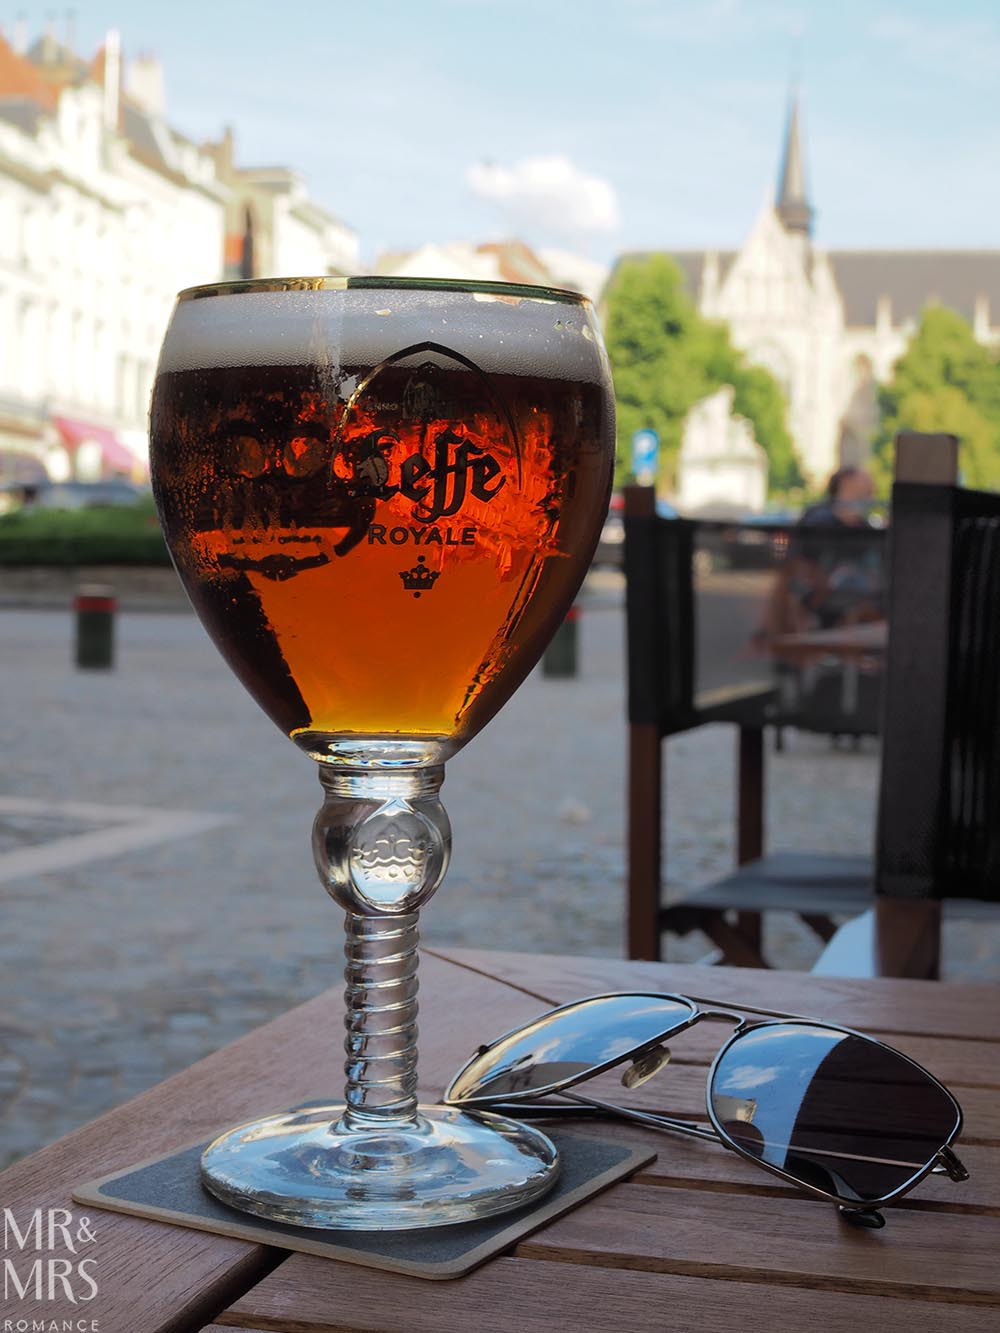 Brussels in 24 hours Leffe Cafe - travel guide - MMR